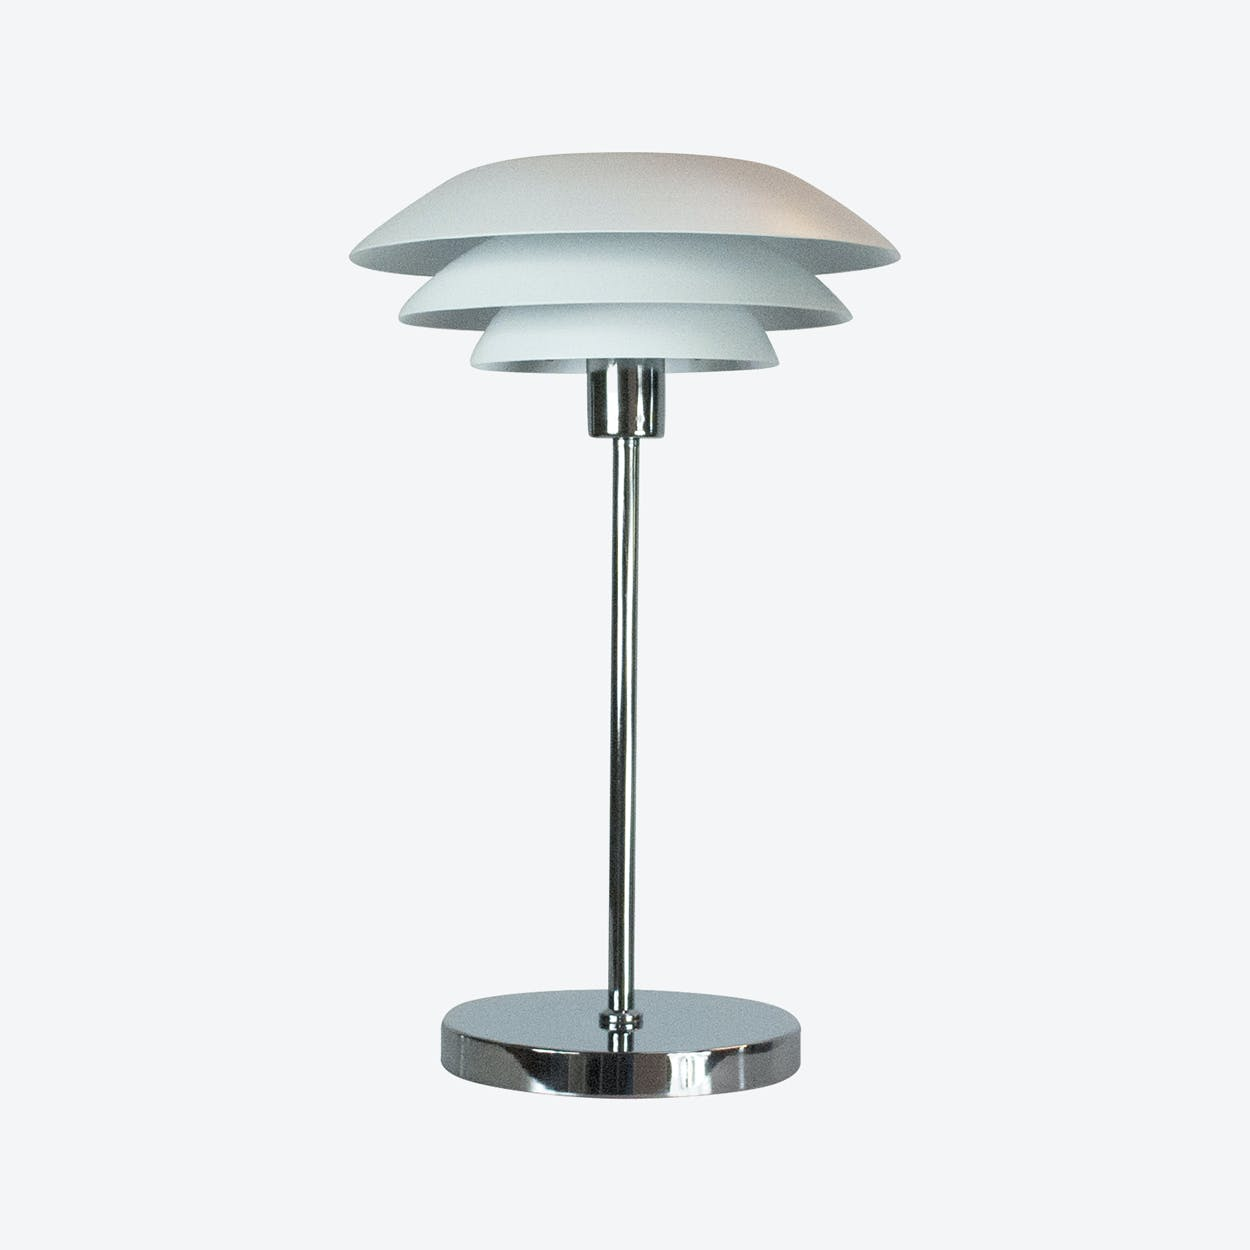 DL31 Table Lamp in Matte White